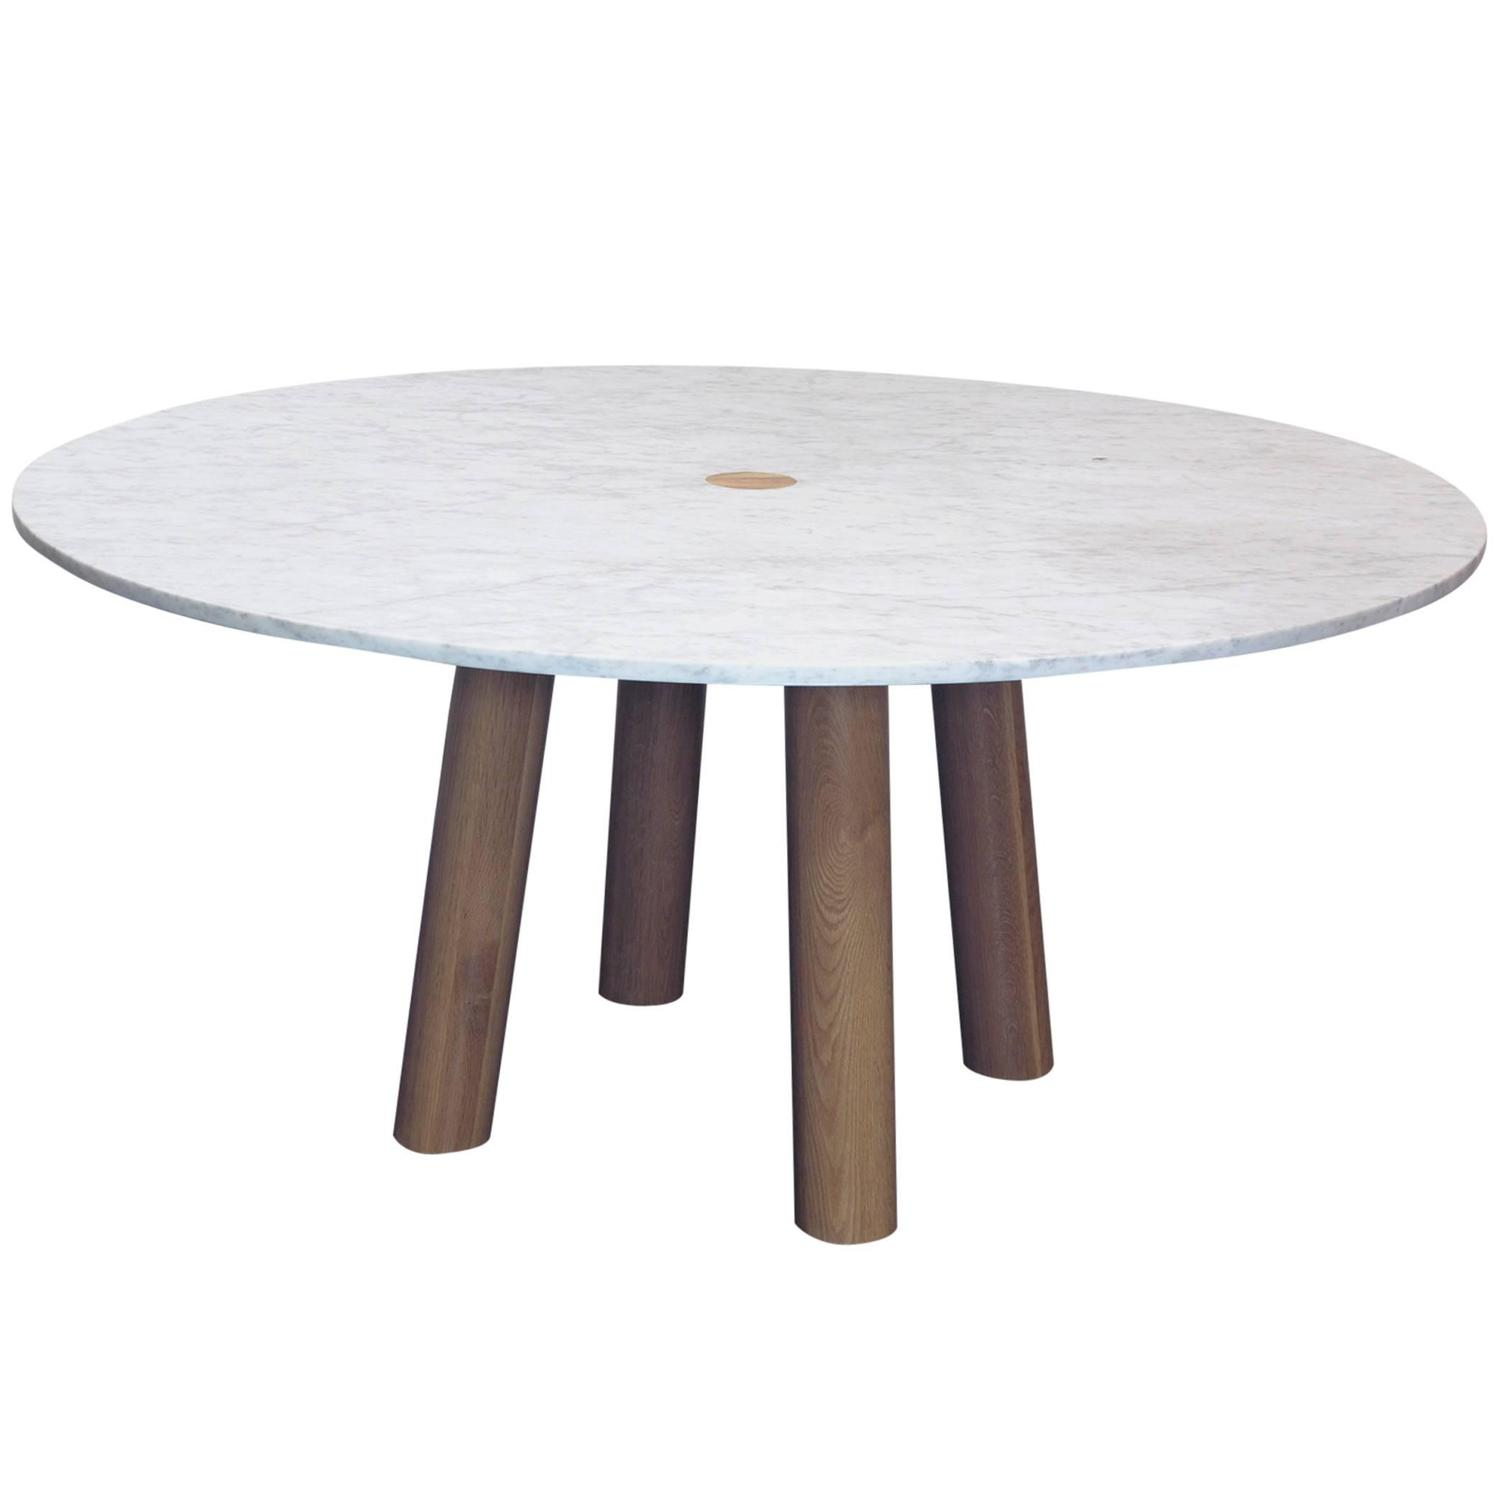 fort standard column dining table round for sale at 1stdibs